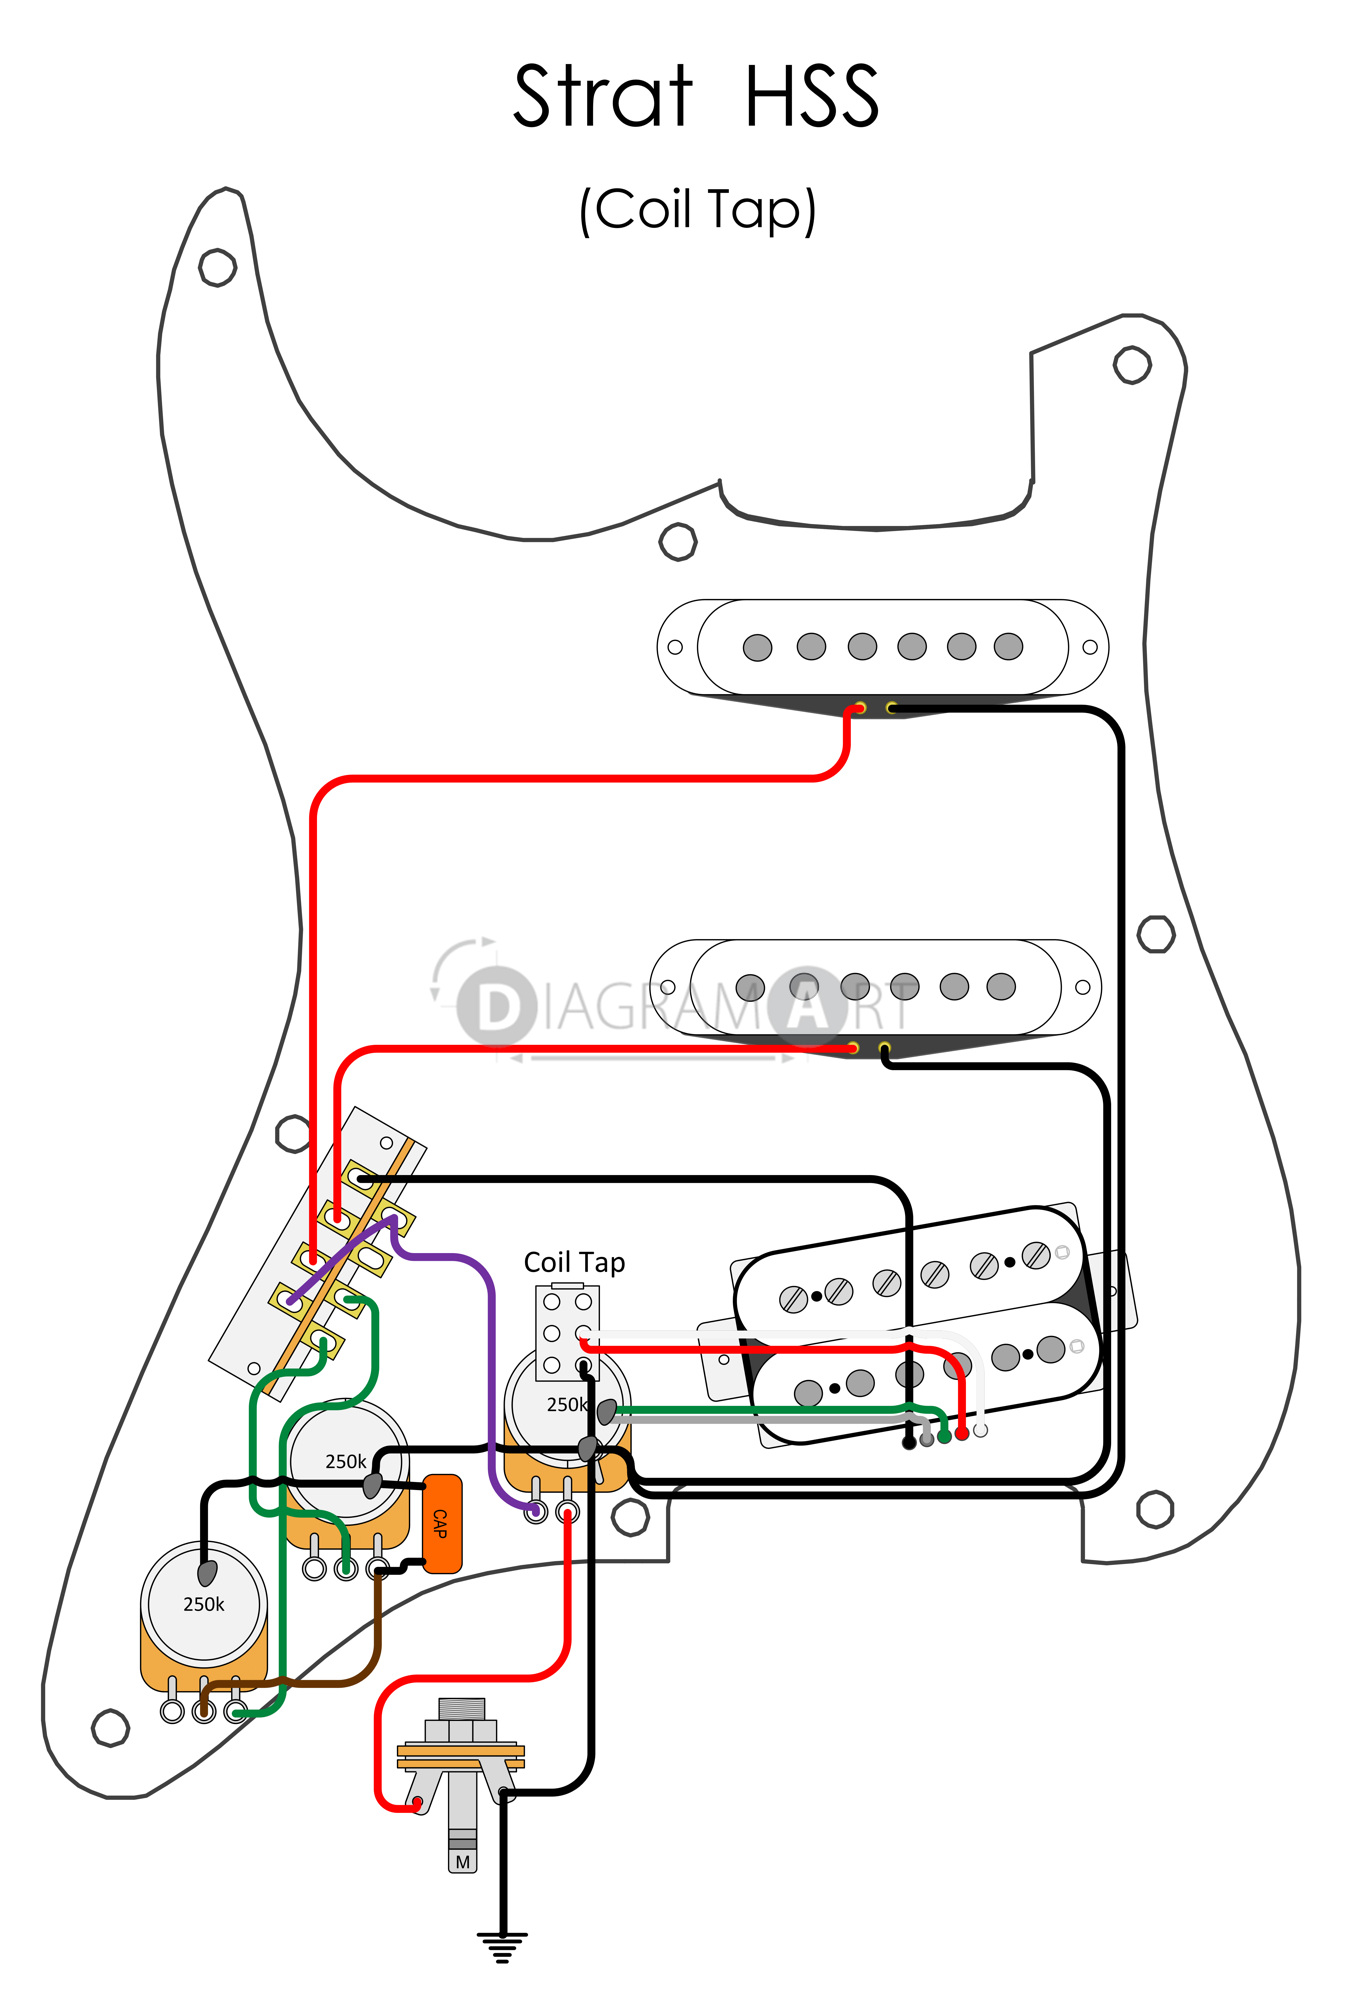 Hss Strat Wiring Schematic Diagrams Diagram On Series Parallel Humbucker Split Coil Electric Guitar Tap Circuit 5 Way Switch